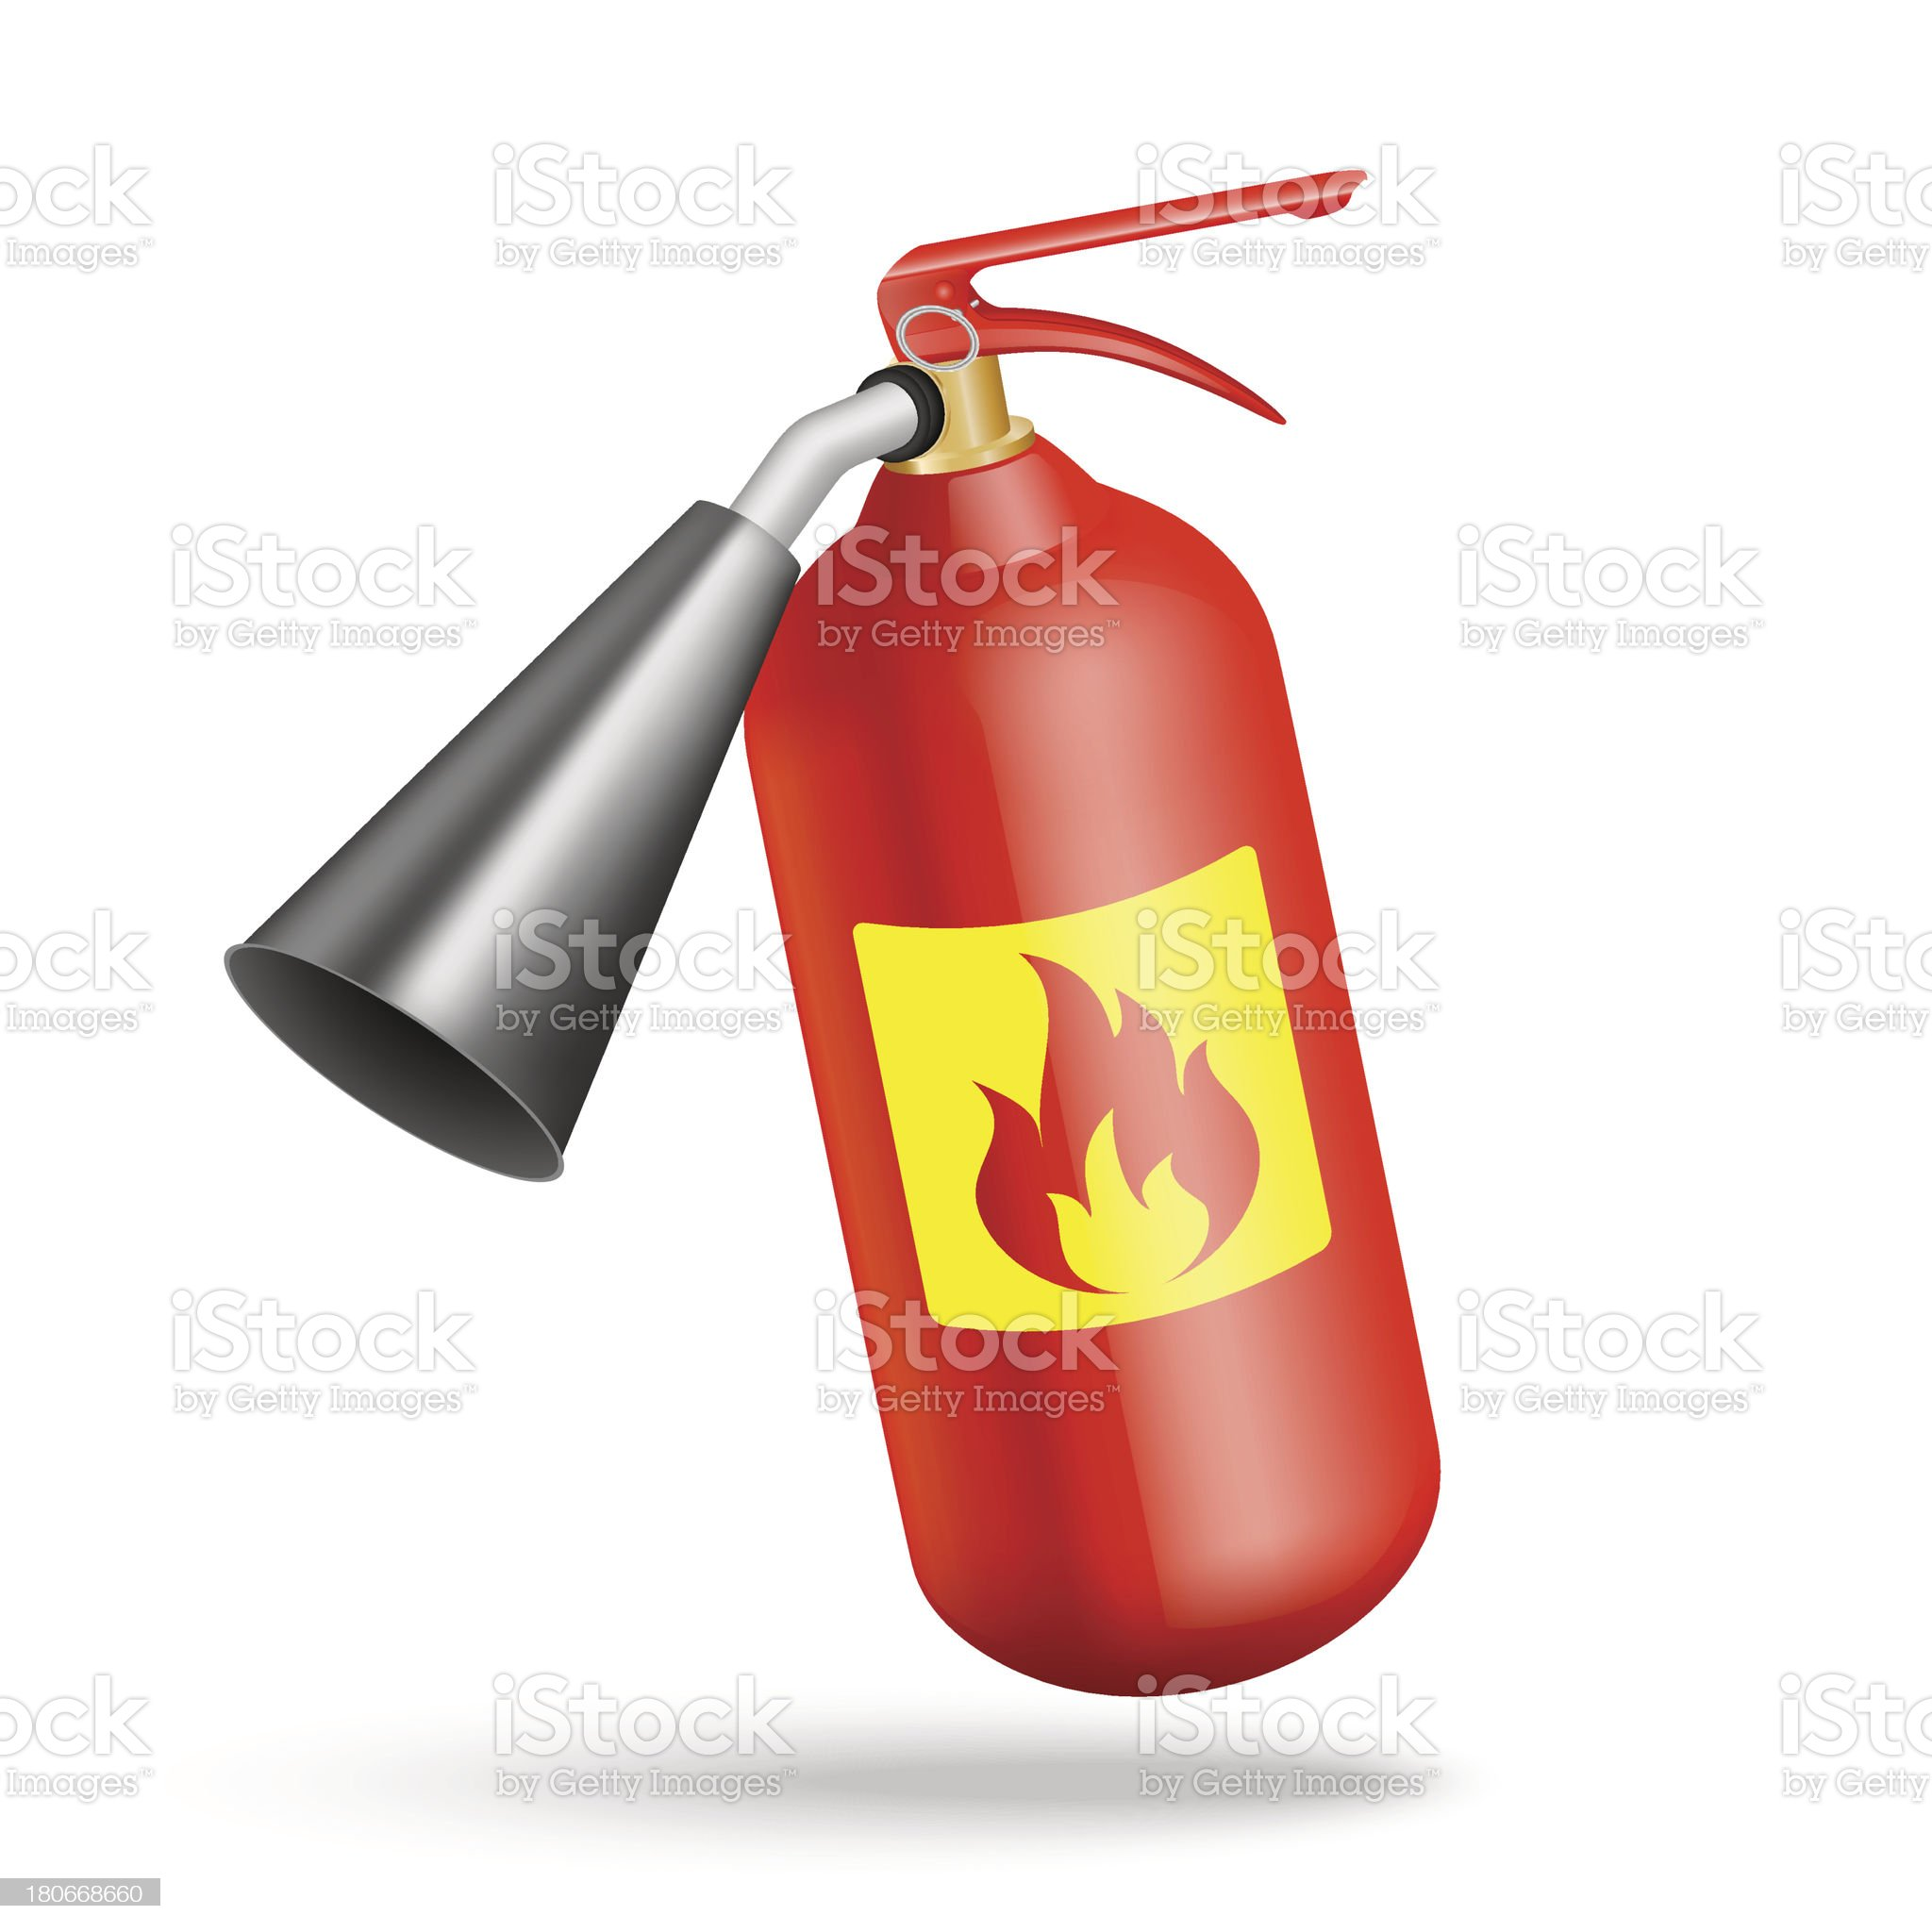 fire extinguisher royalty-free stock vector art